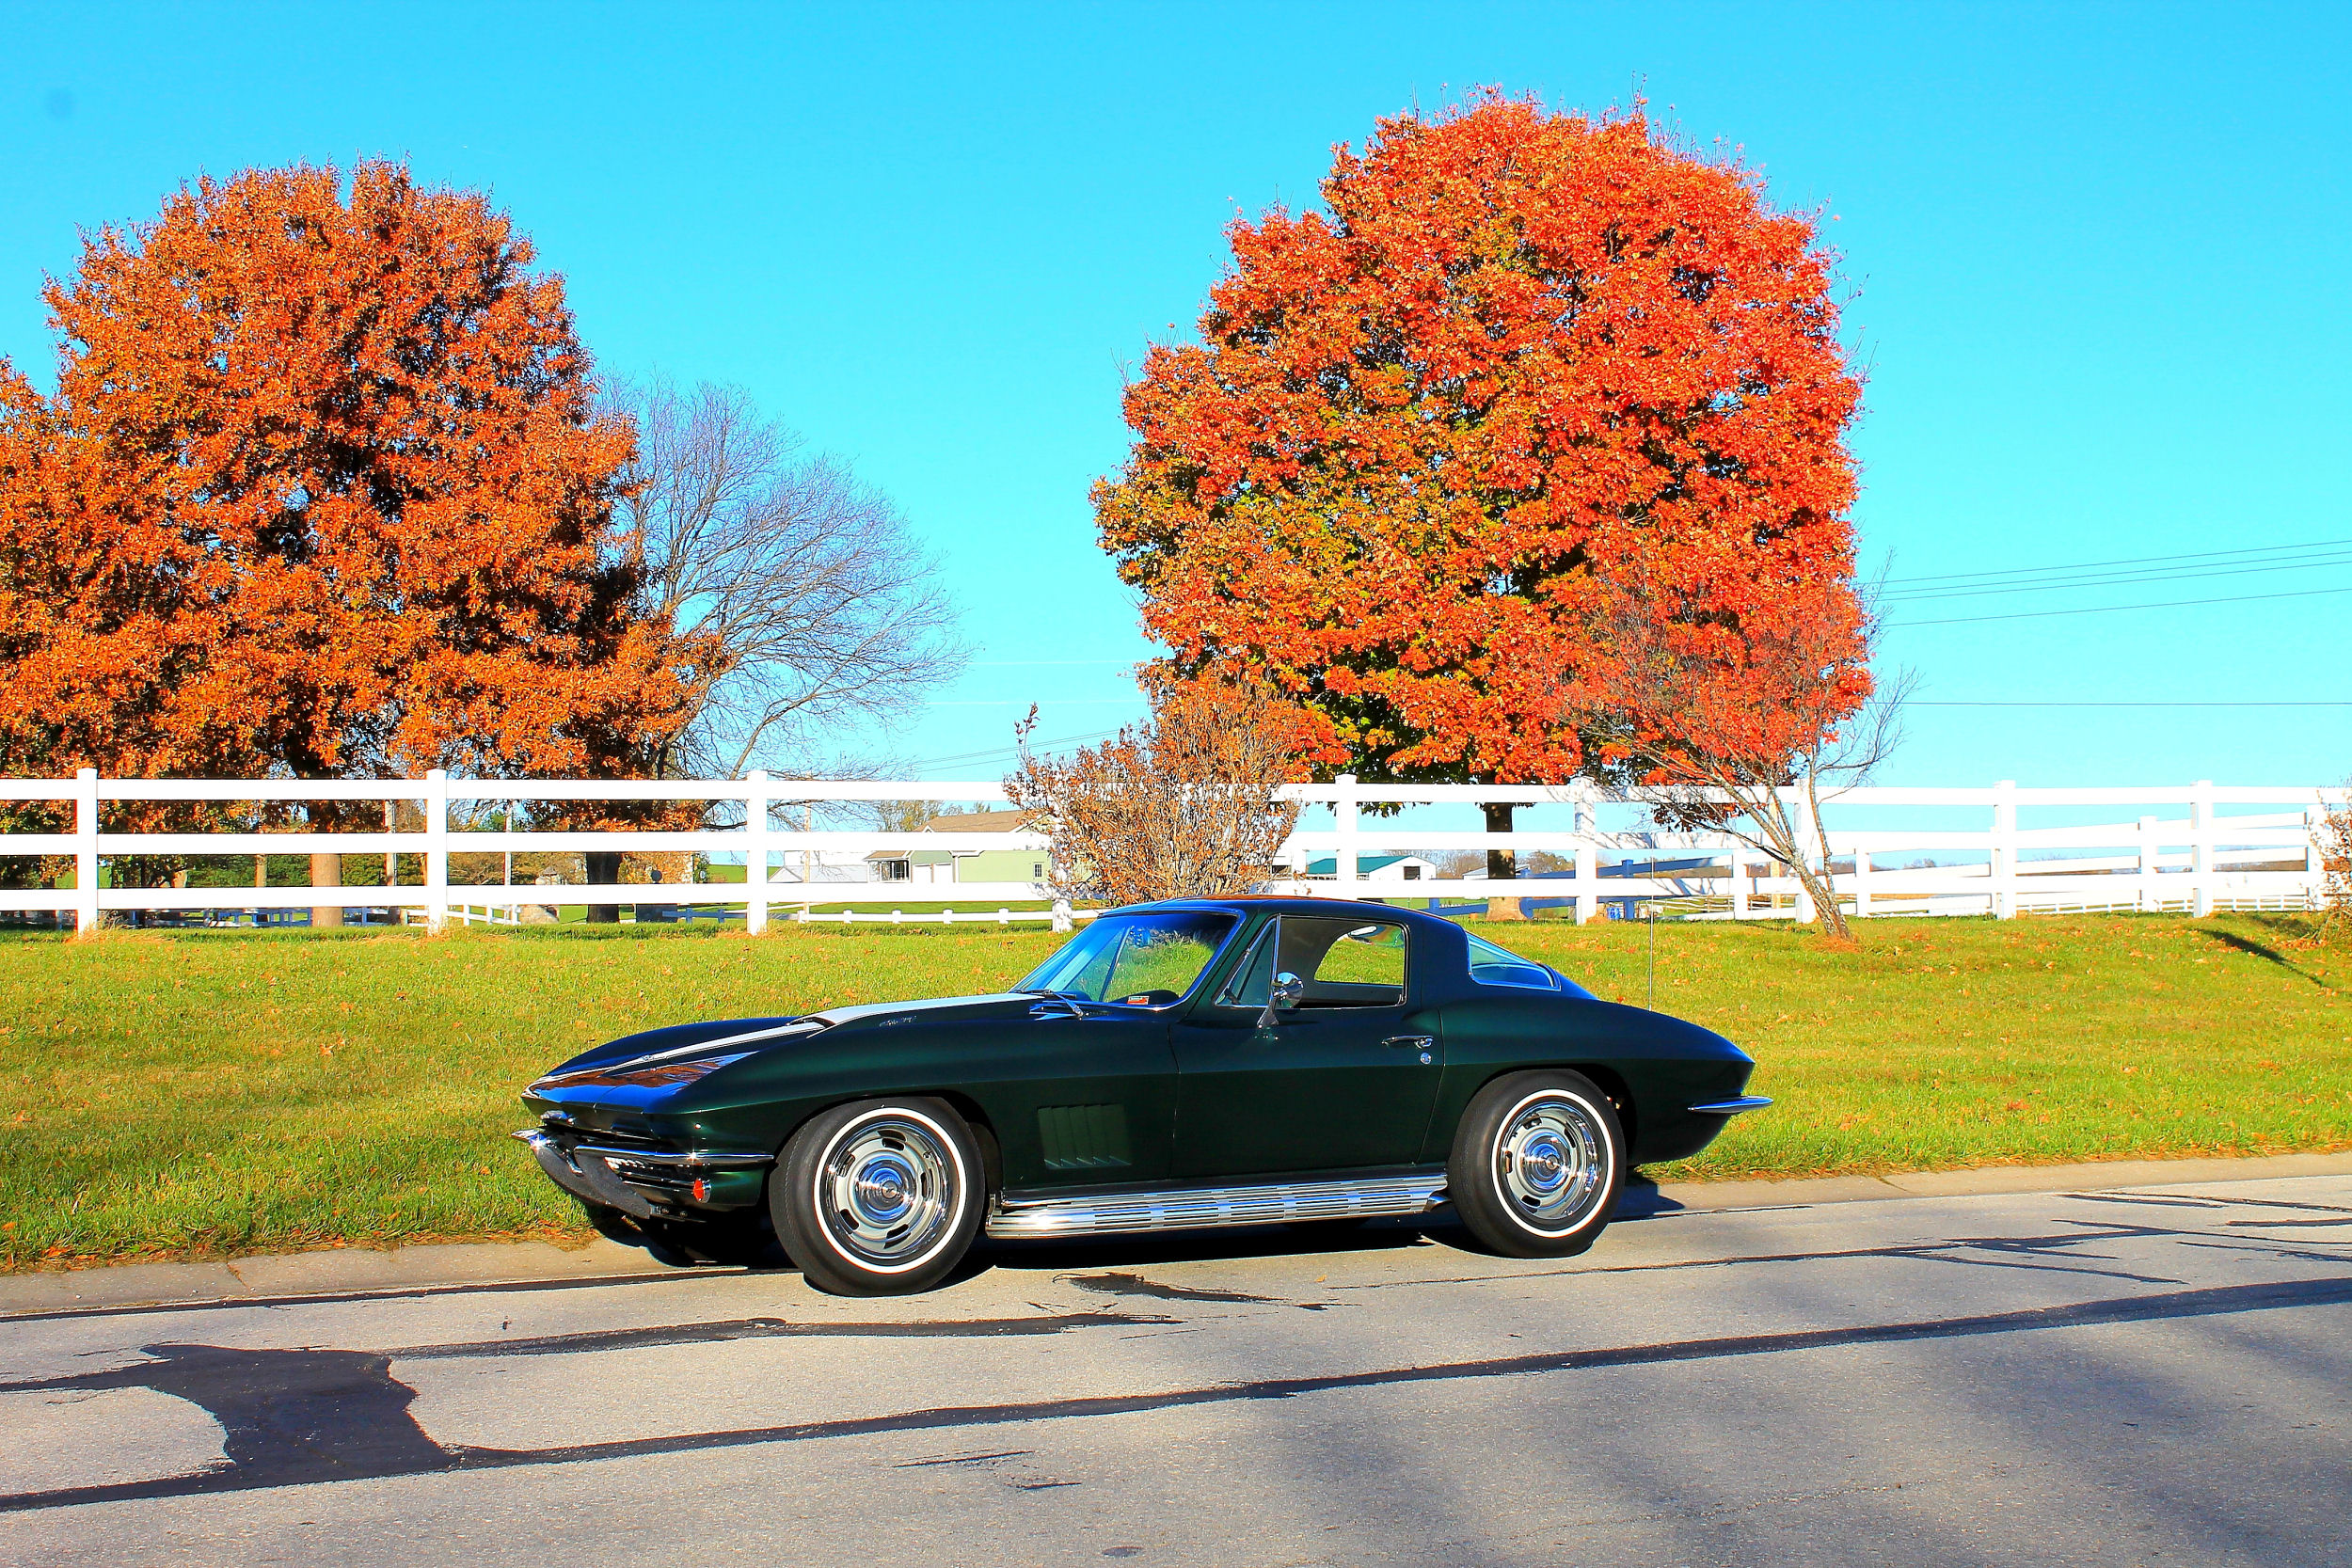 Midwest Corvettes and Classics